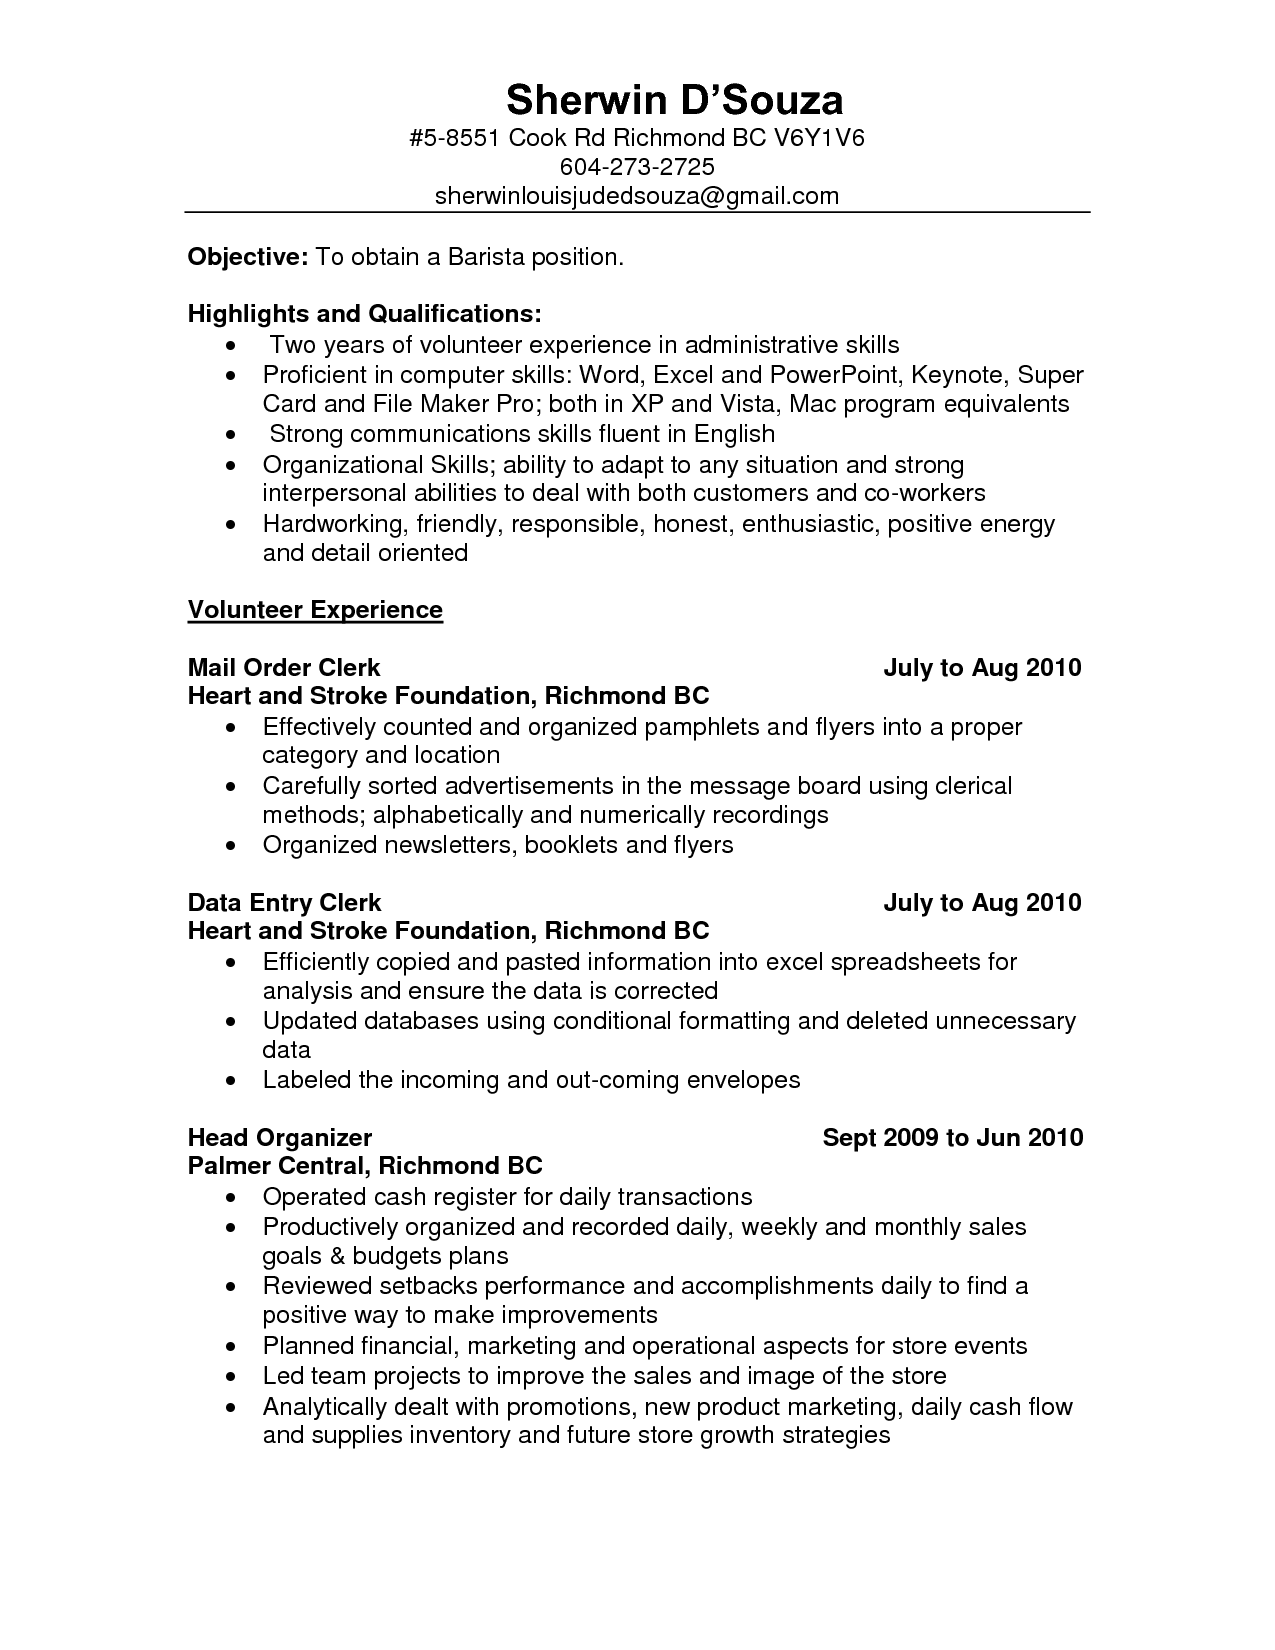 barista job description resume samples